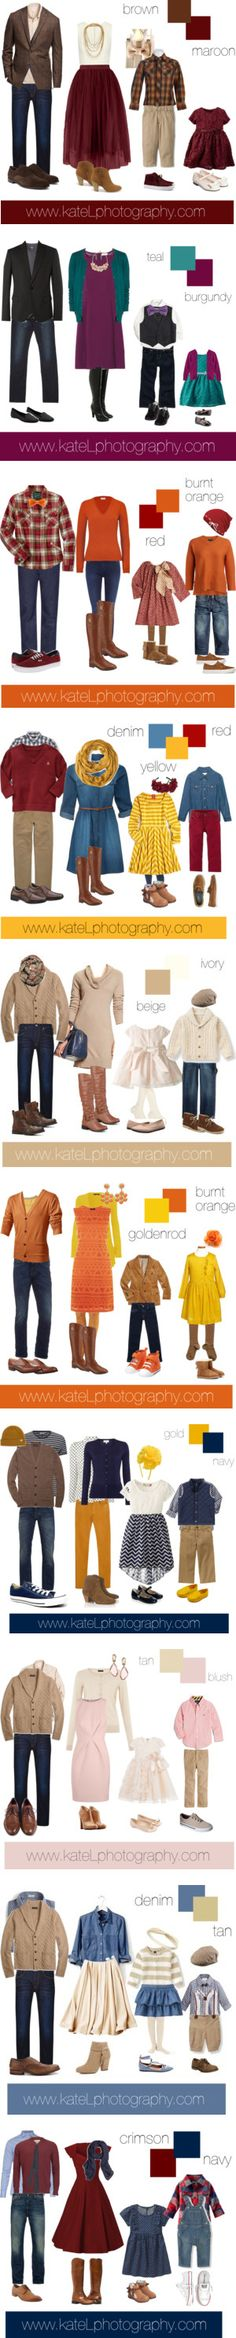 What to Wear for Fall Family Photos by katelphoto on Polyvore featuring мода, Alice + Olivia, G-Star Raw, Brooks Brothers, Rosantica, Wrangler, Tod's, Report, Il Gufo and Tory Burch